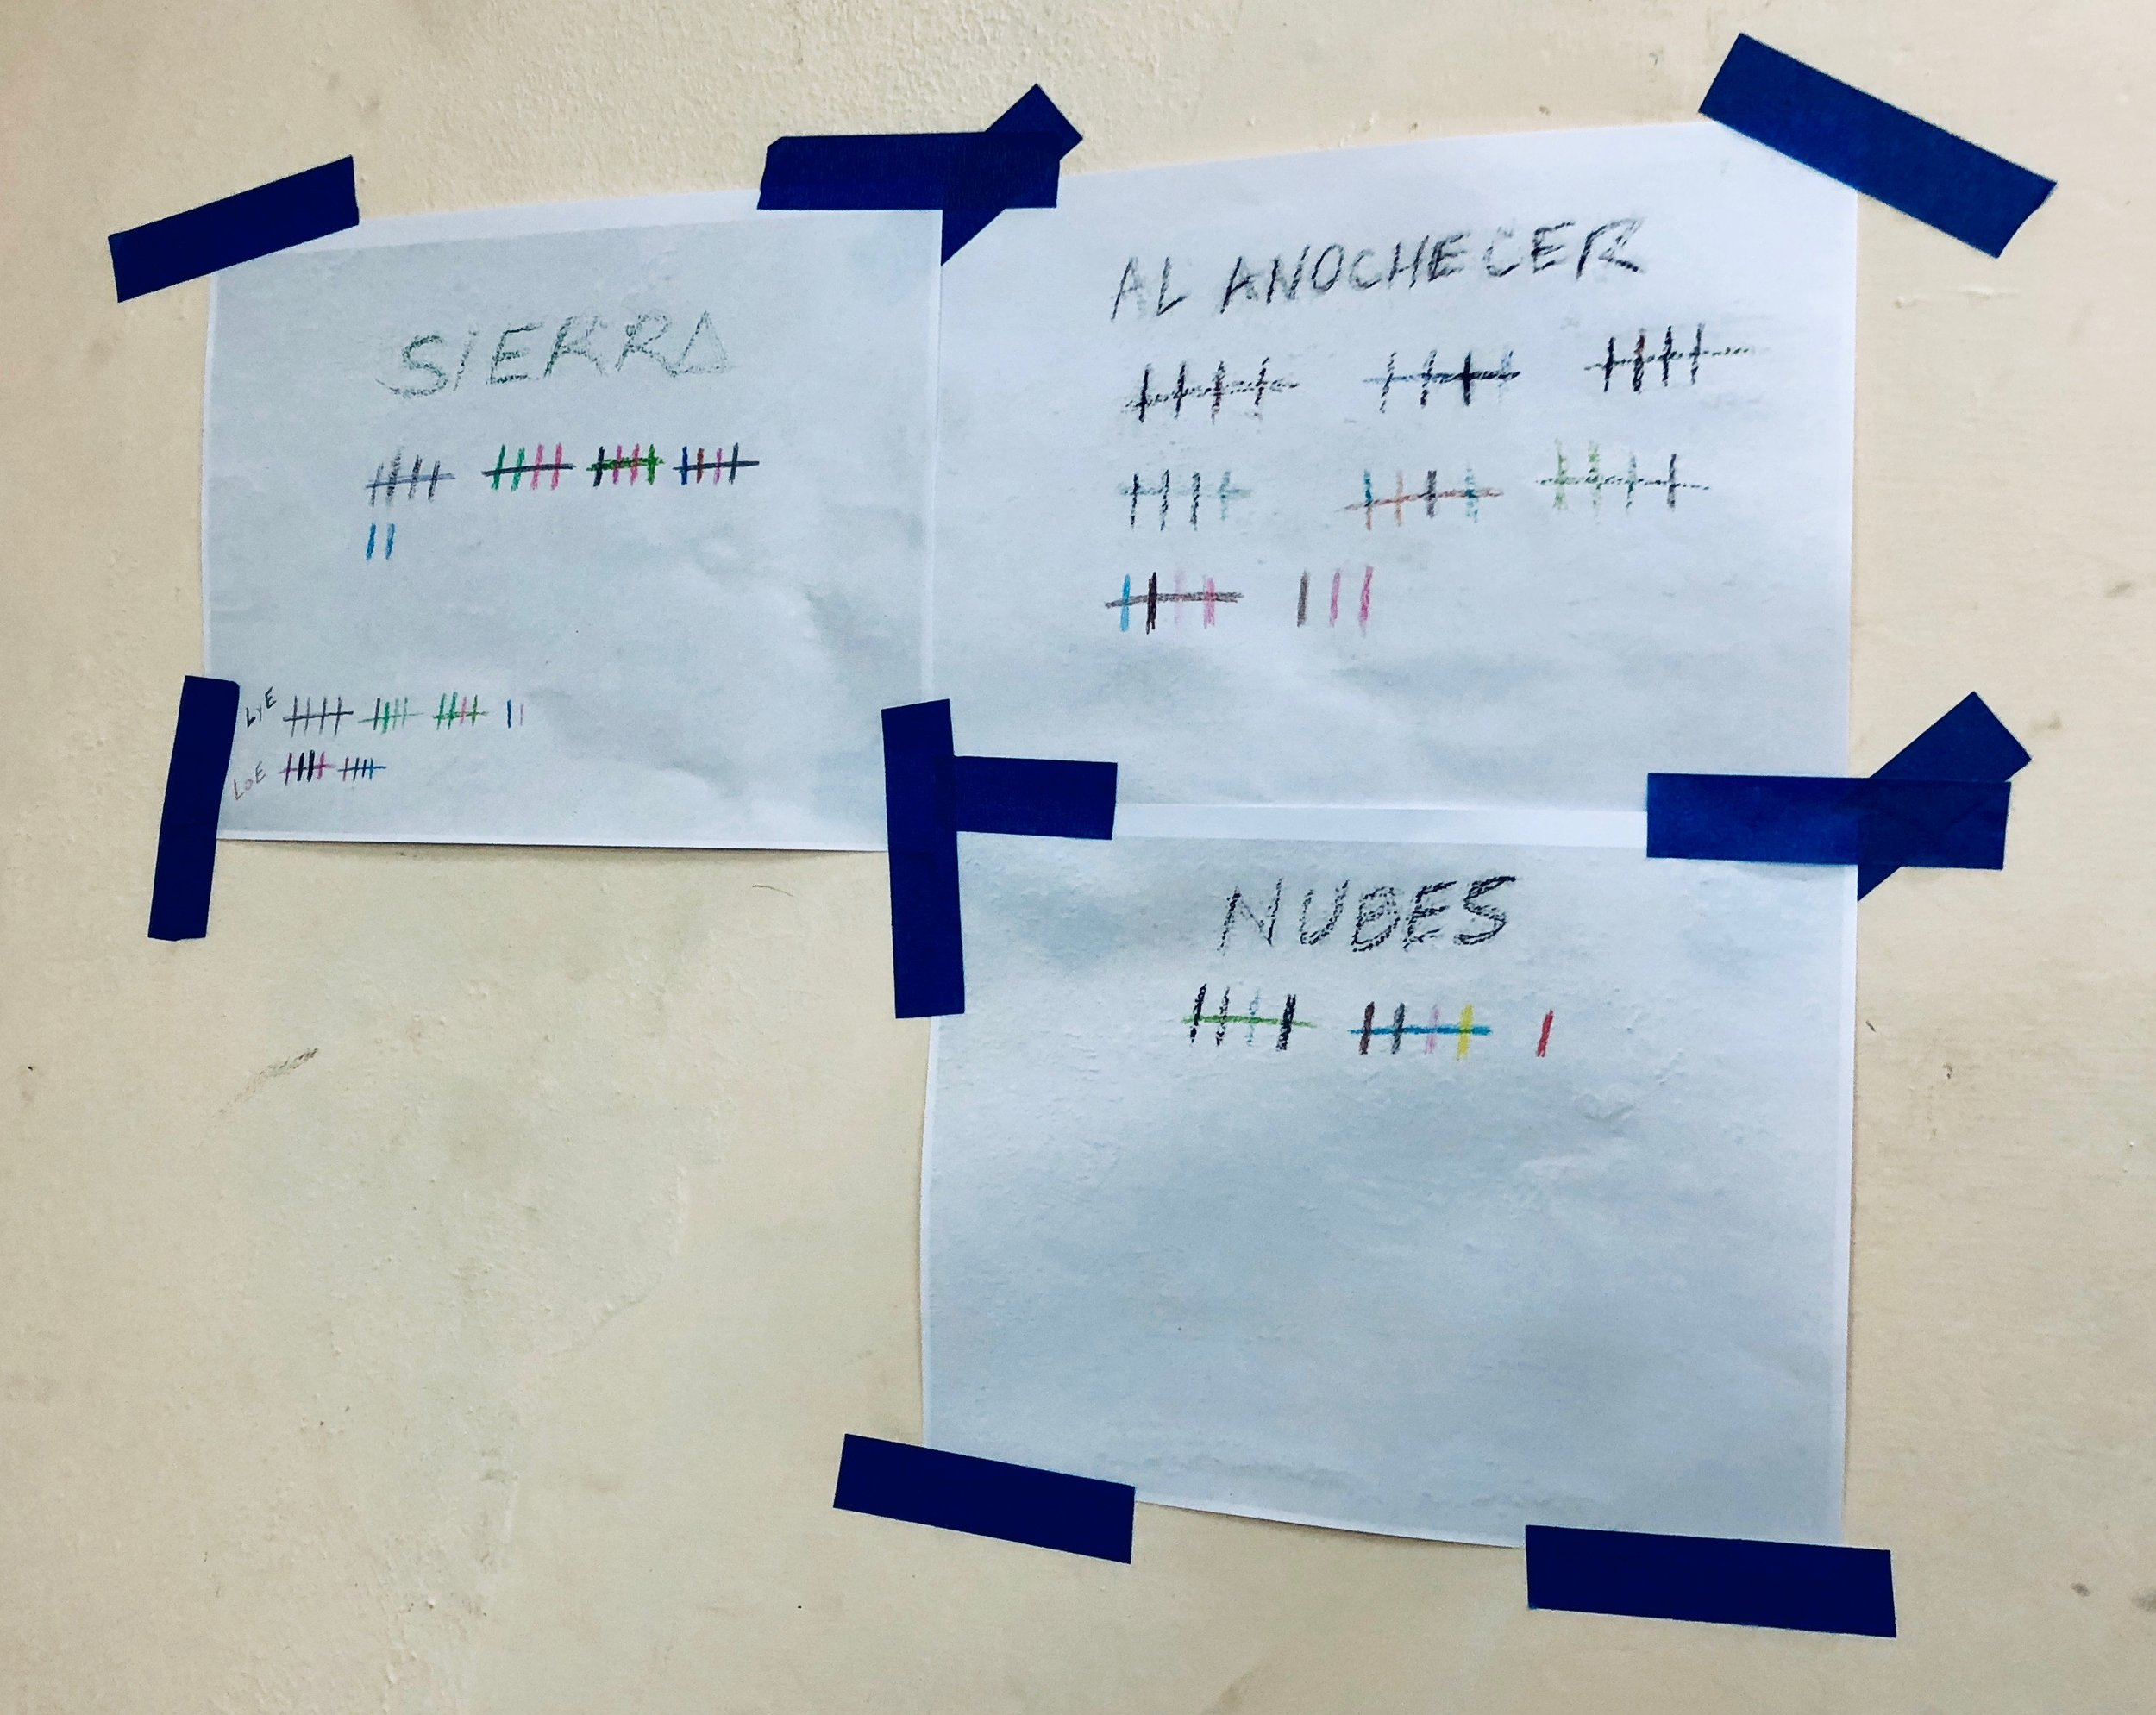 The tally sheet pinned up on the wall of Roger Toledo's studio in Havana, Cuba. October 7, 2018.